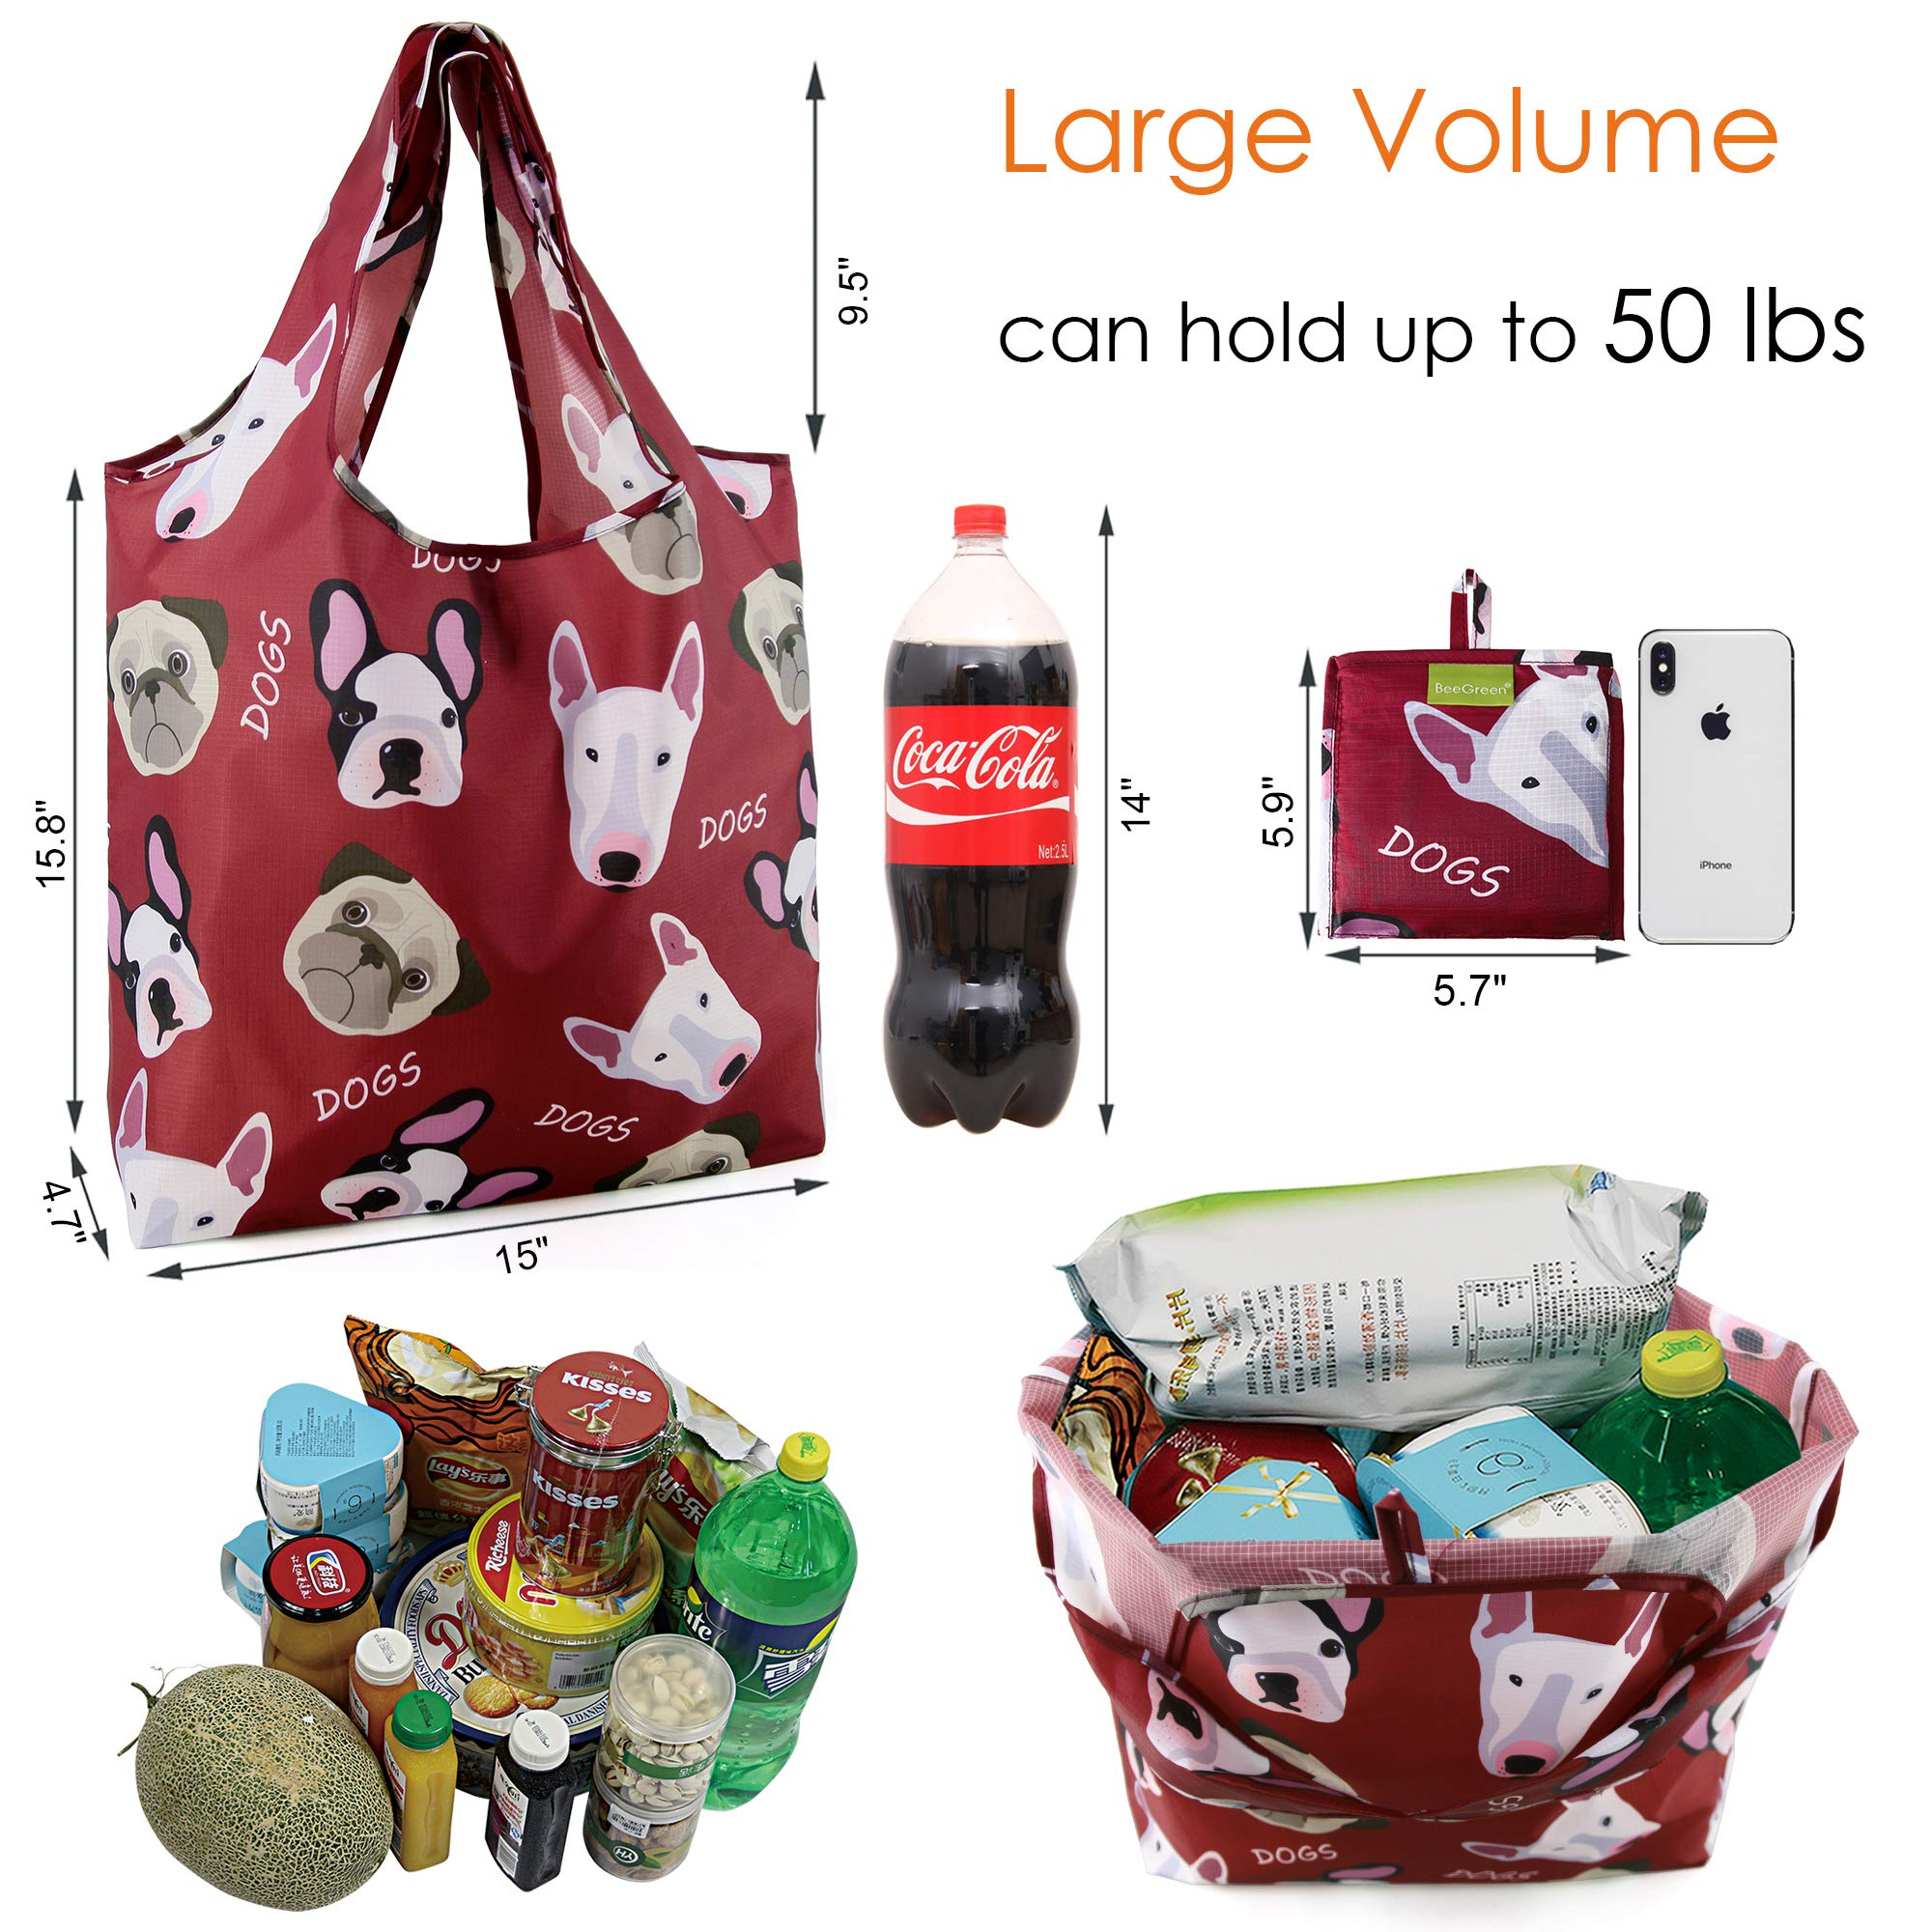 Grocery Bags Reusable Foldable 6 Pack Shopping Bags Large 50LBS Cute Groceries Bags with Pouch Bulk Ripstop Waterproof Machine Washable Eco-Friendly Nylon Elephant Hedgehog Cat Turtle Dog Penguin by BeeGreen (Image #2)